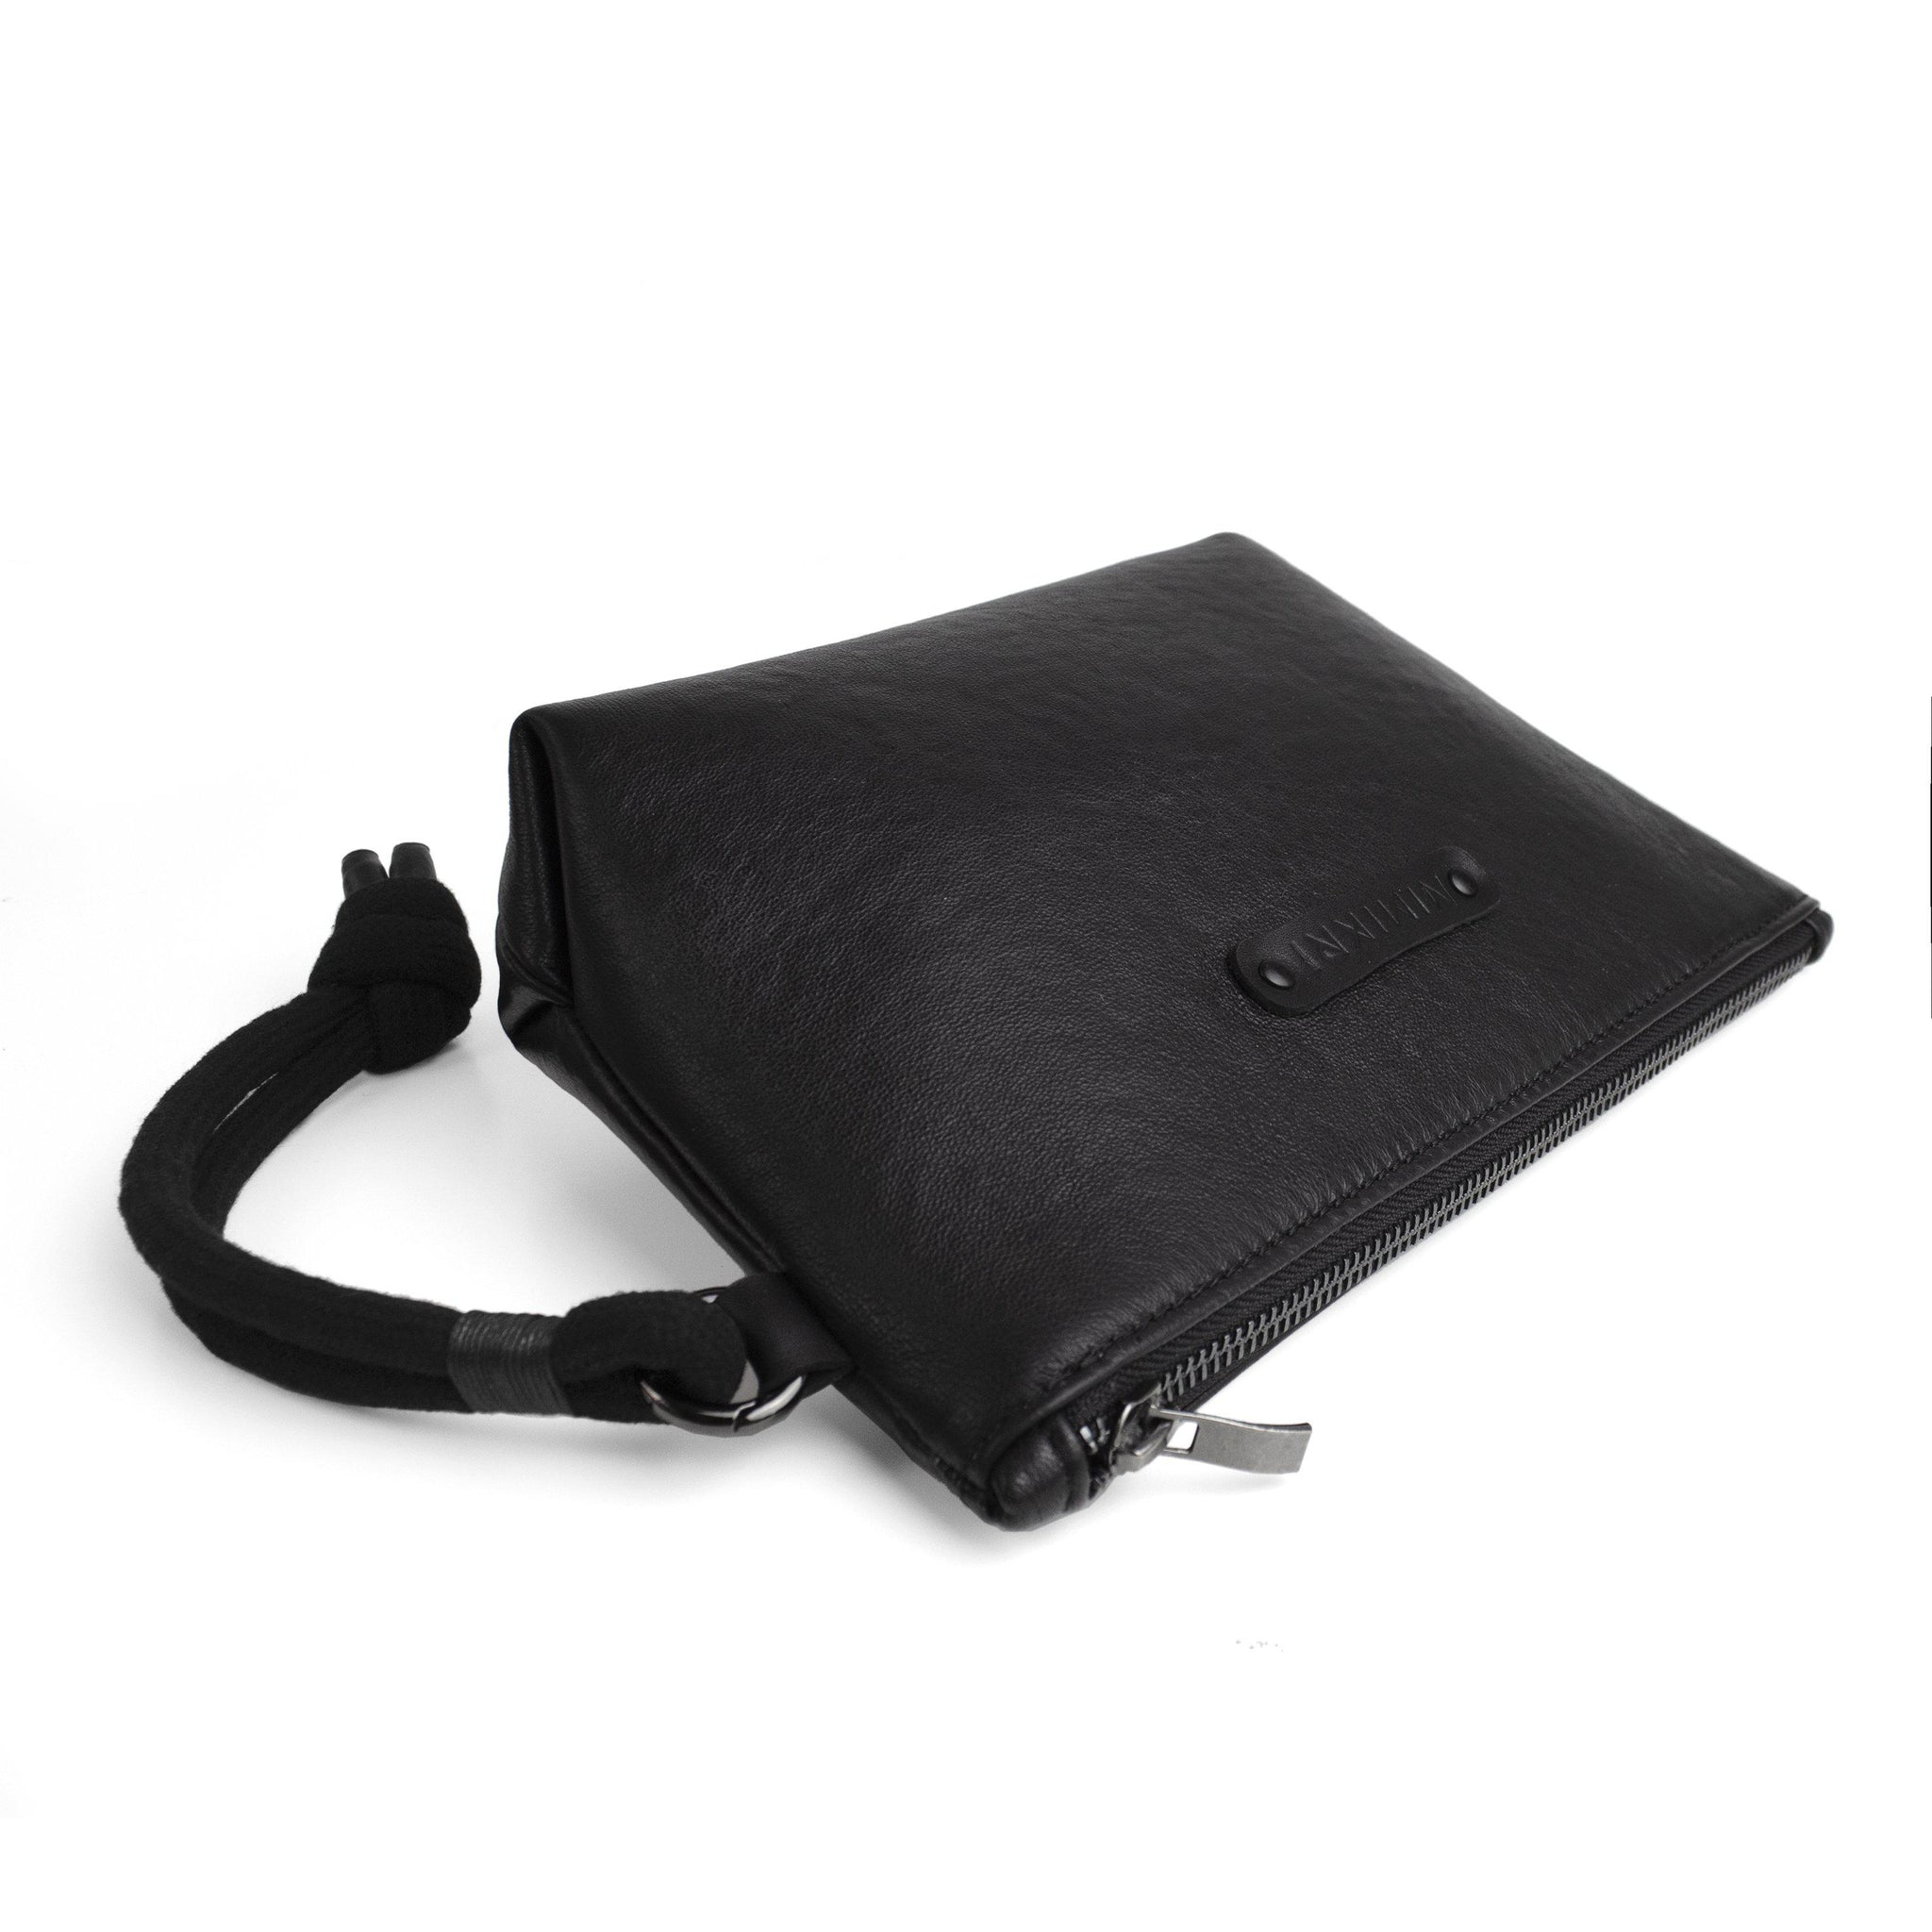 Black leather makeup / clutch bag